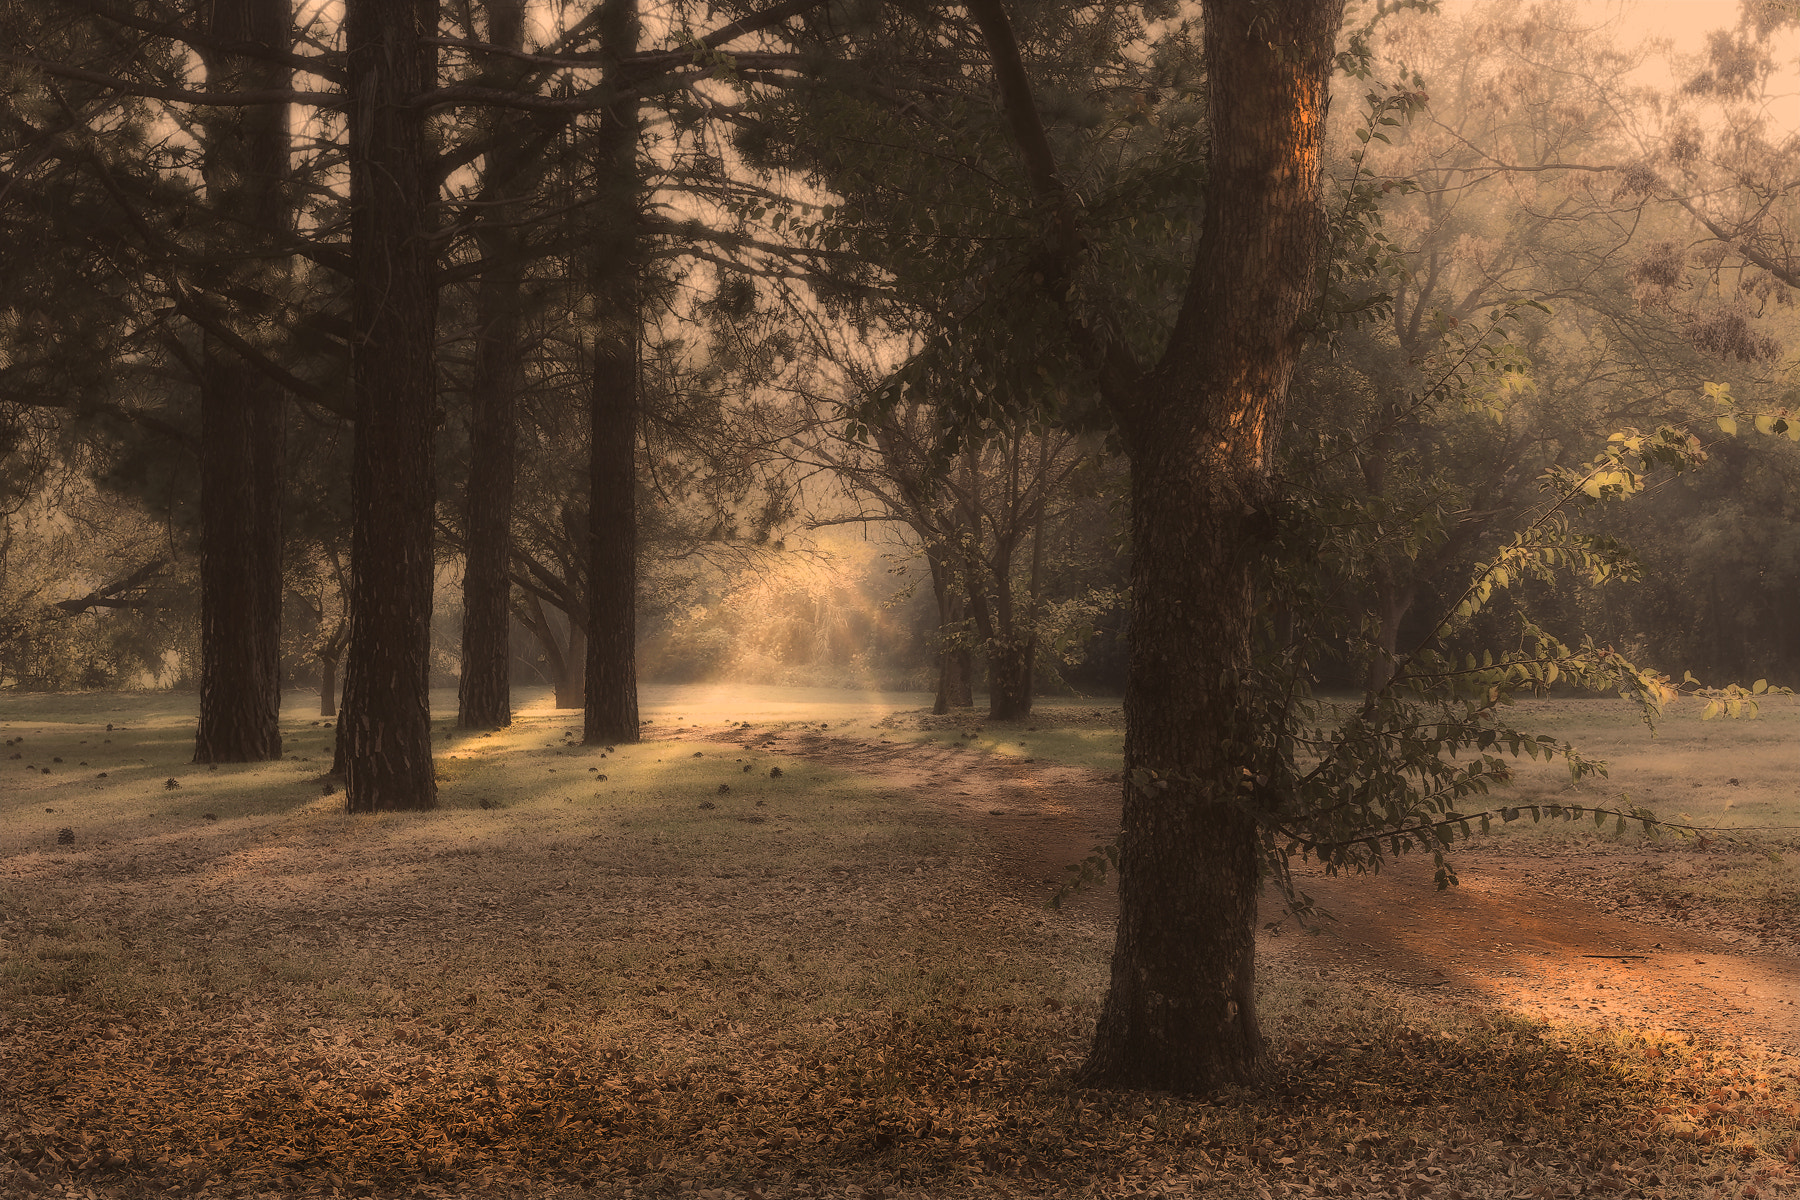 Photograph Early in the Morning by Pieter Oosthuysen on 500px